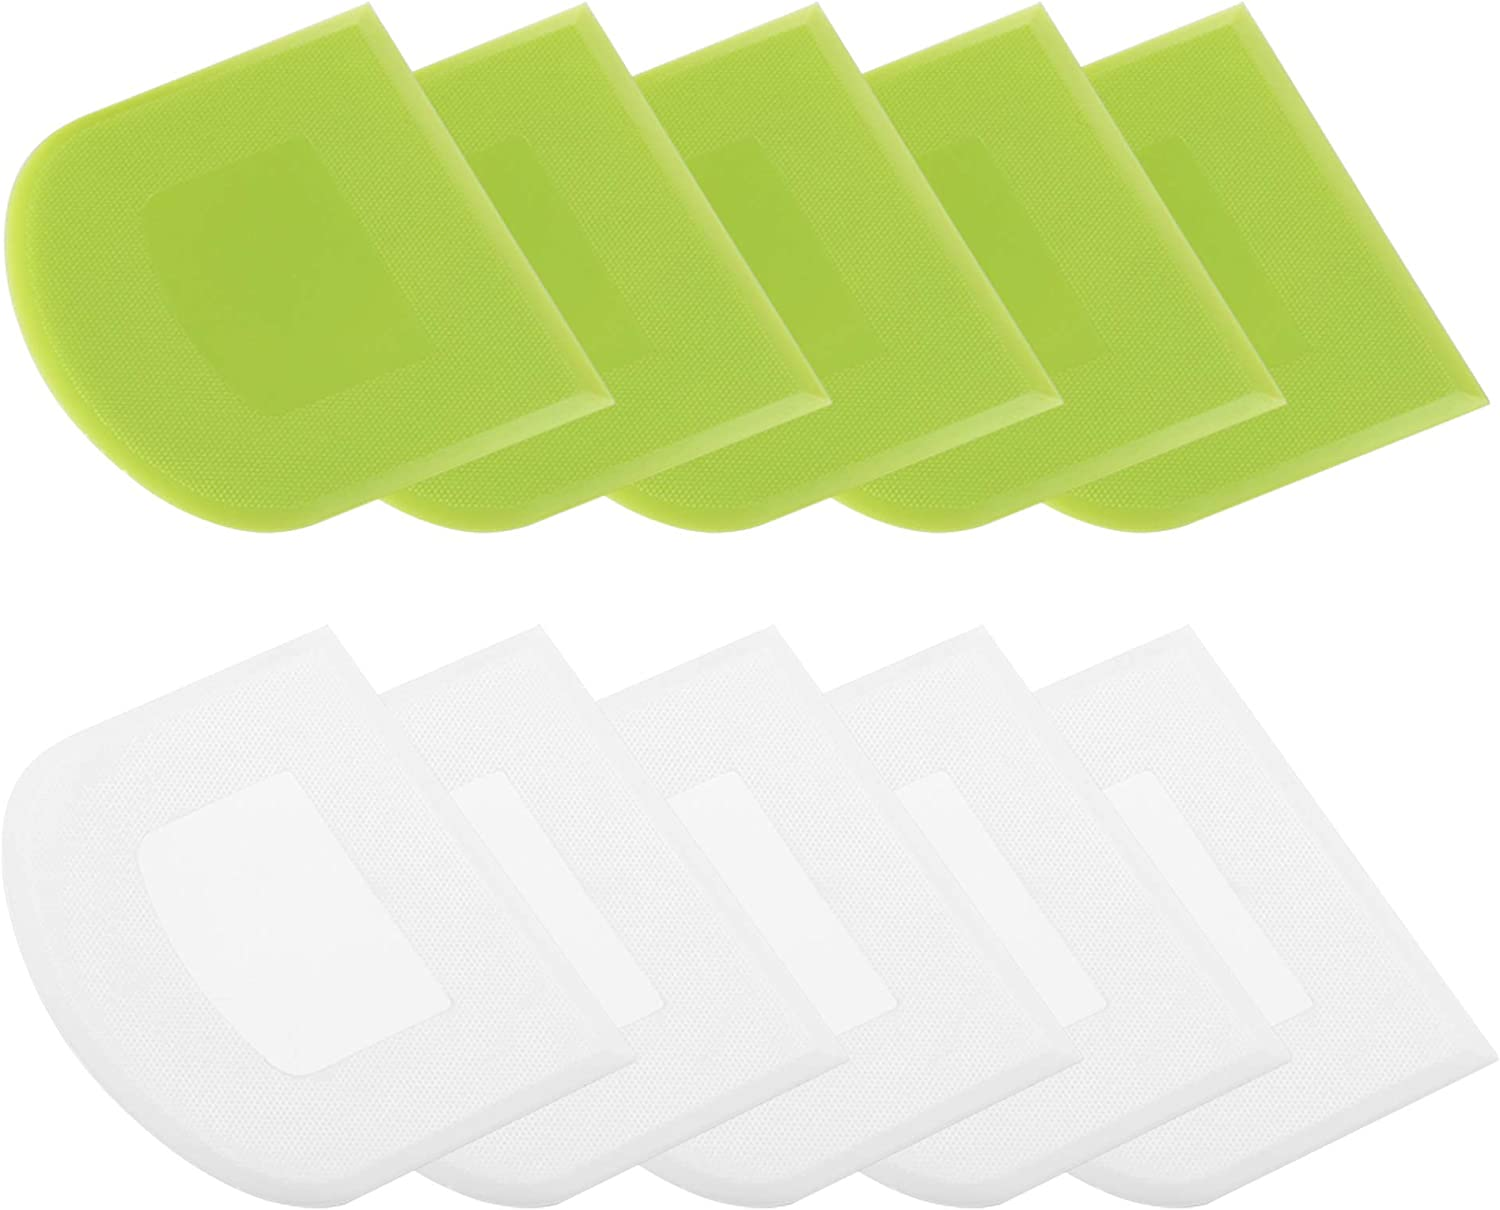 10 Pcs Durable Flexible Smooth Dough & Bowl Scraper With Food-safe & Eco-friendly PE Plastic for Multipurpose of Scraping Shoveling Cutting Cake Dough Fondant Chocolate